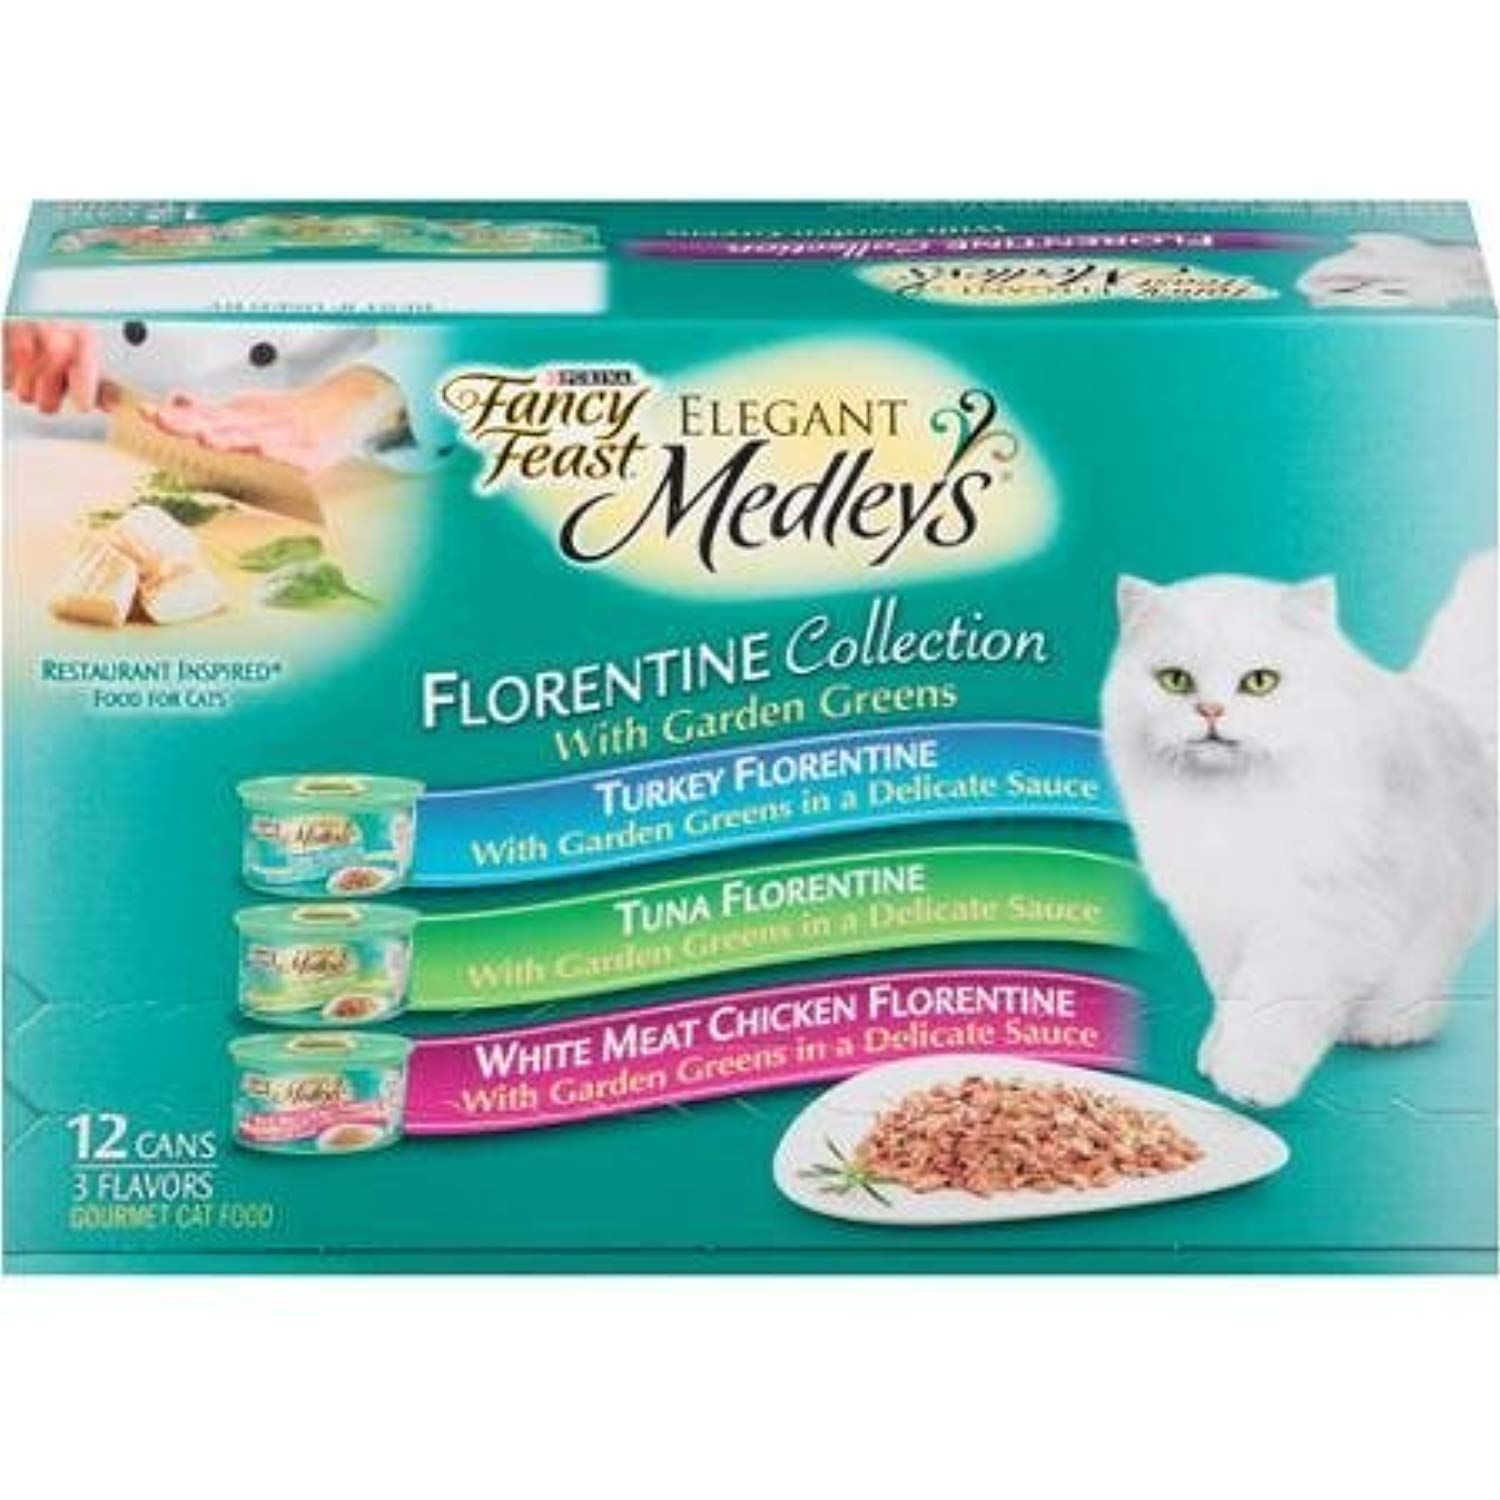 Fancy Feast Elegant Medleys Florentine Collection Cat Food Variety Pack 12 3 Oz Cans Contains 4 Each Turkey Florentine Wet Cat Food Cat Food Best Cat Food